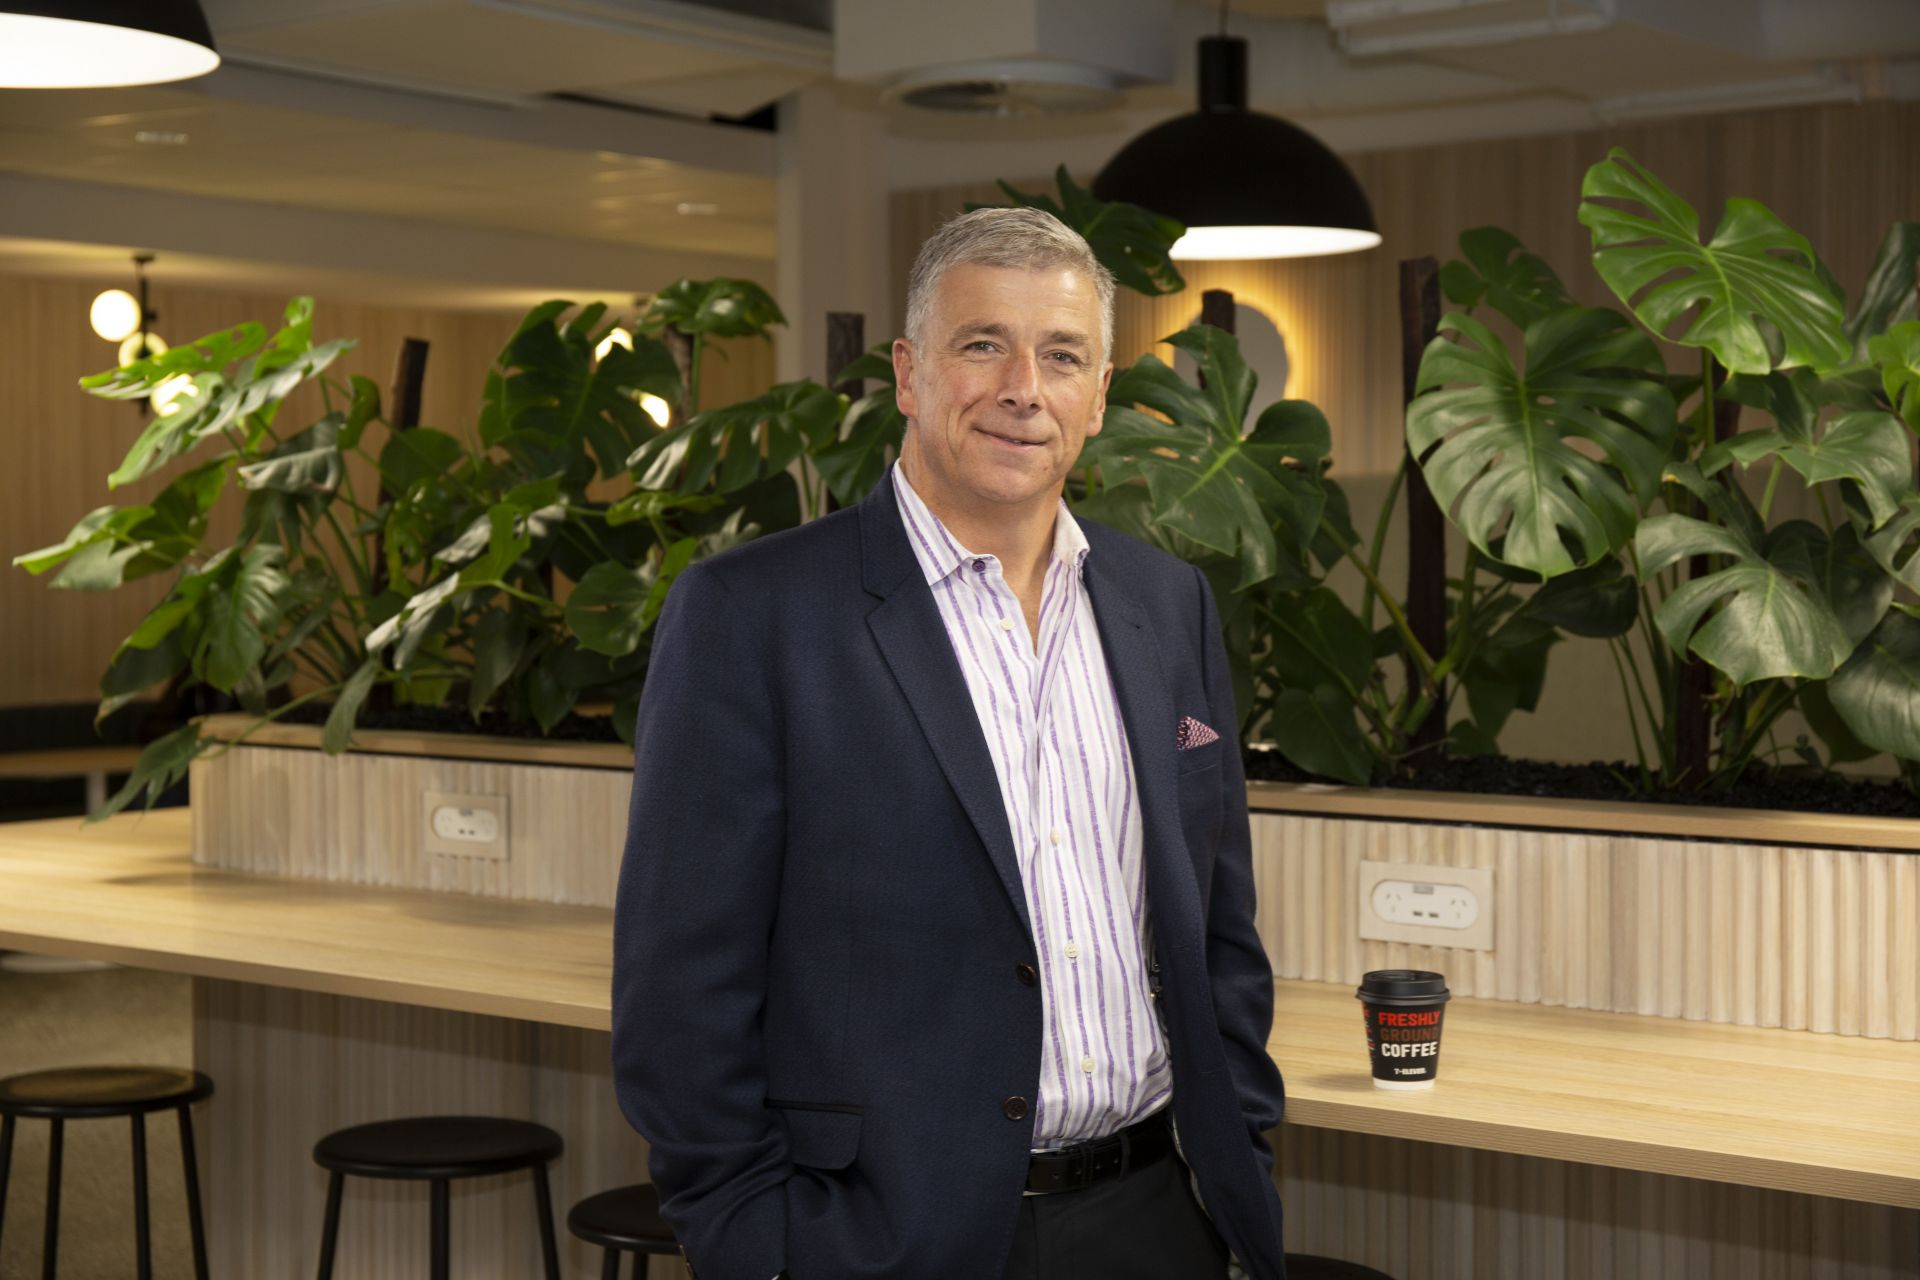 7-Eleven restructures with agile methodologies   Inside Franchise Business Executive